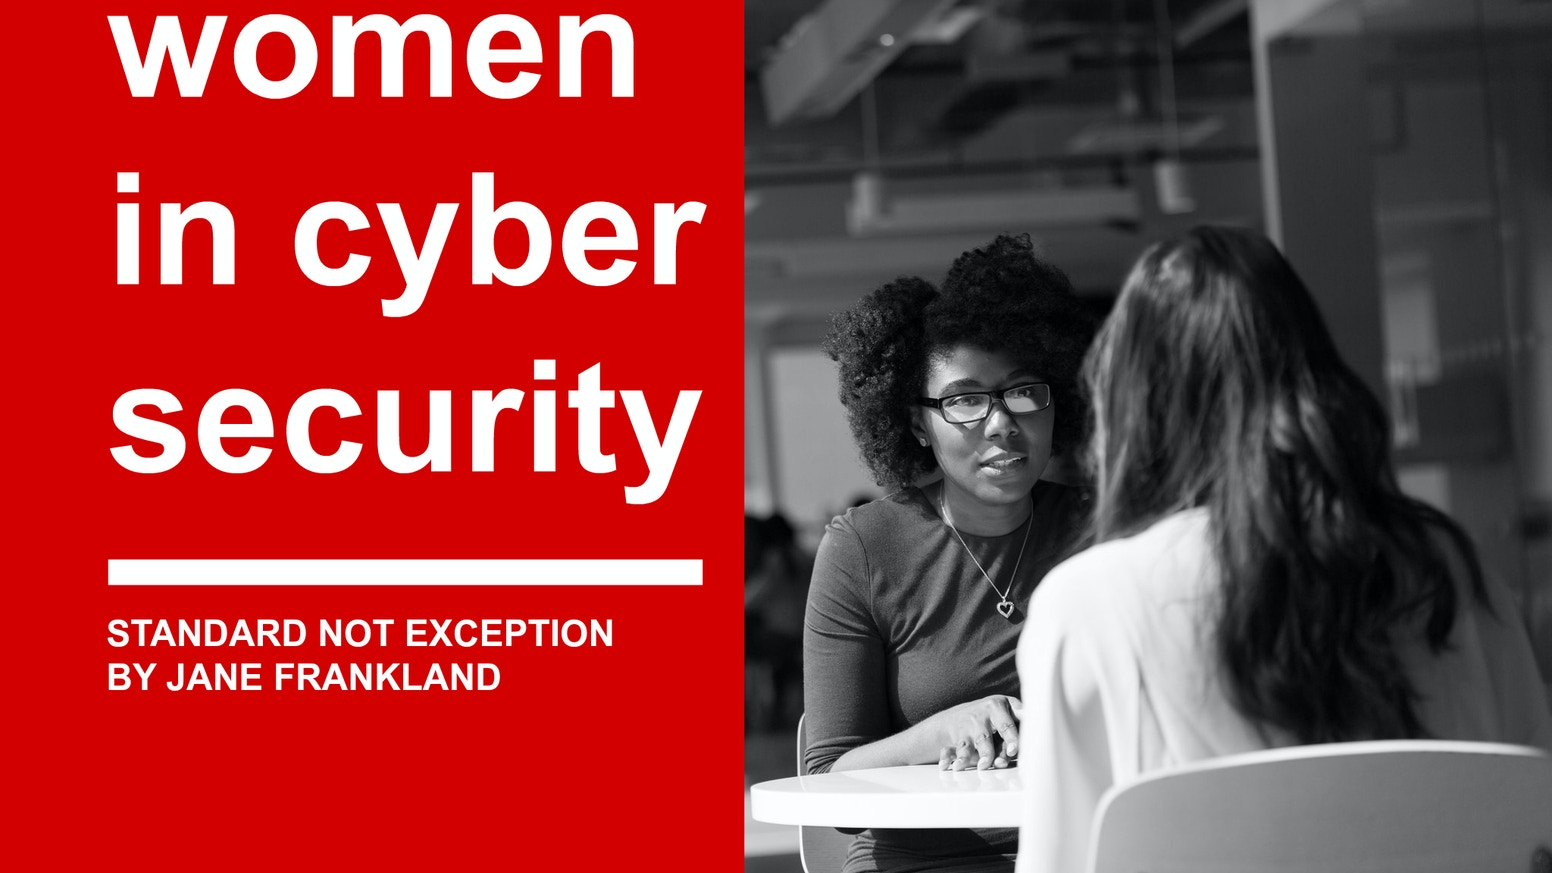 Cyber security is a growing industry but the numbers of women in it are declining year-on-year. This book aims to reverse that trend. (Images by #WOCinTech/#WOCinTechChat)